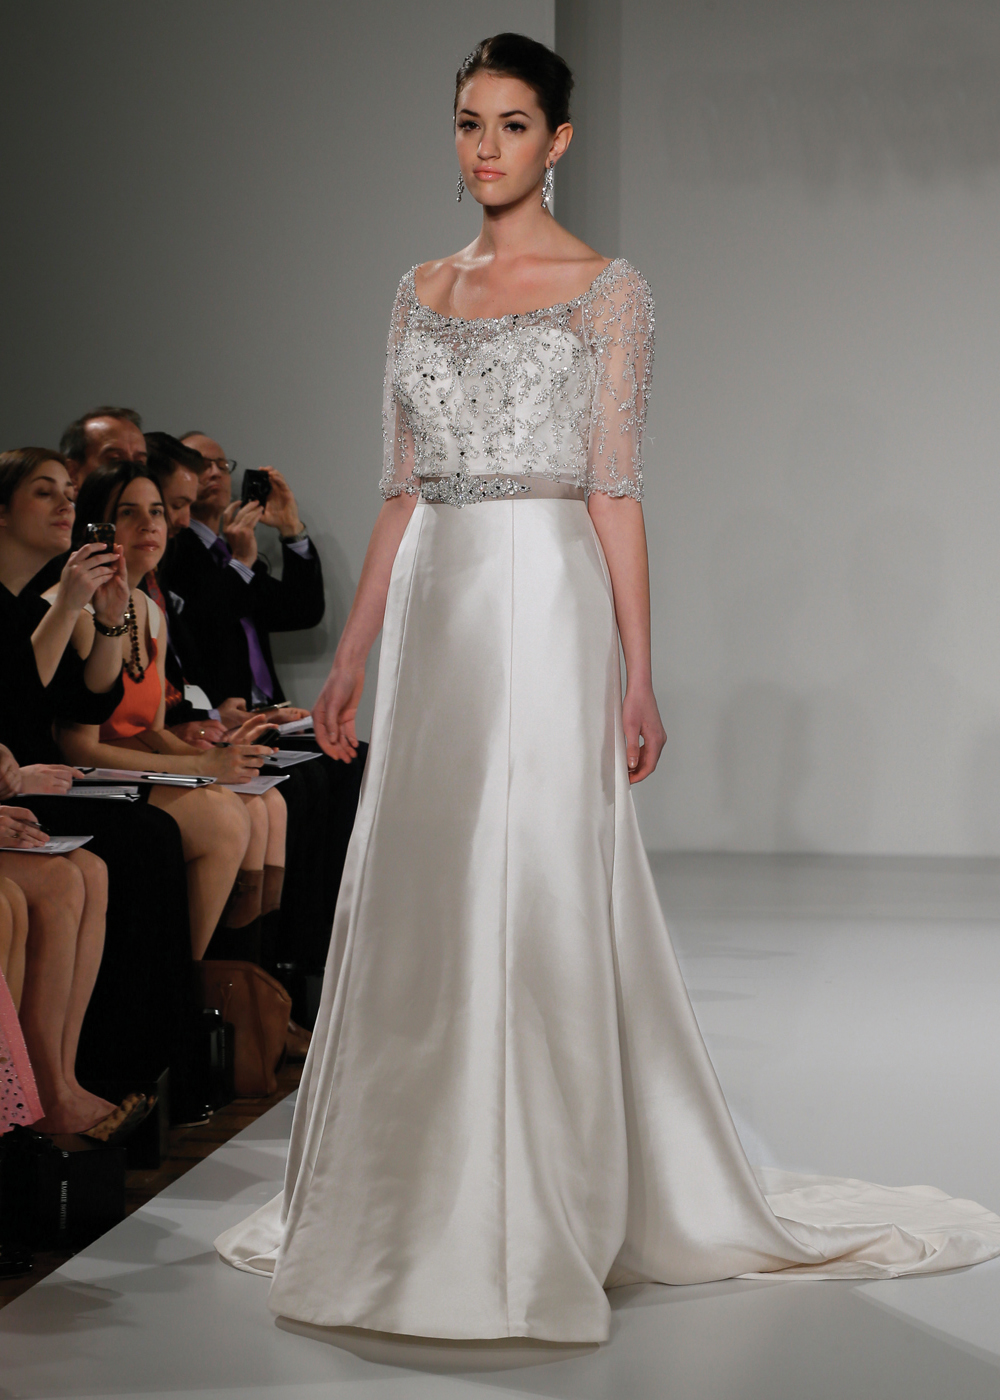 Maggie Sottero Glamorous 3/4 Sleeve A-Line Wedding Gown